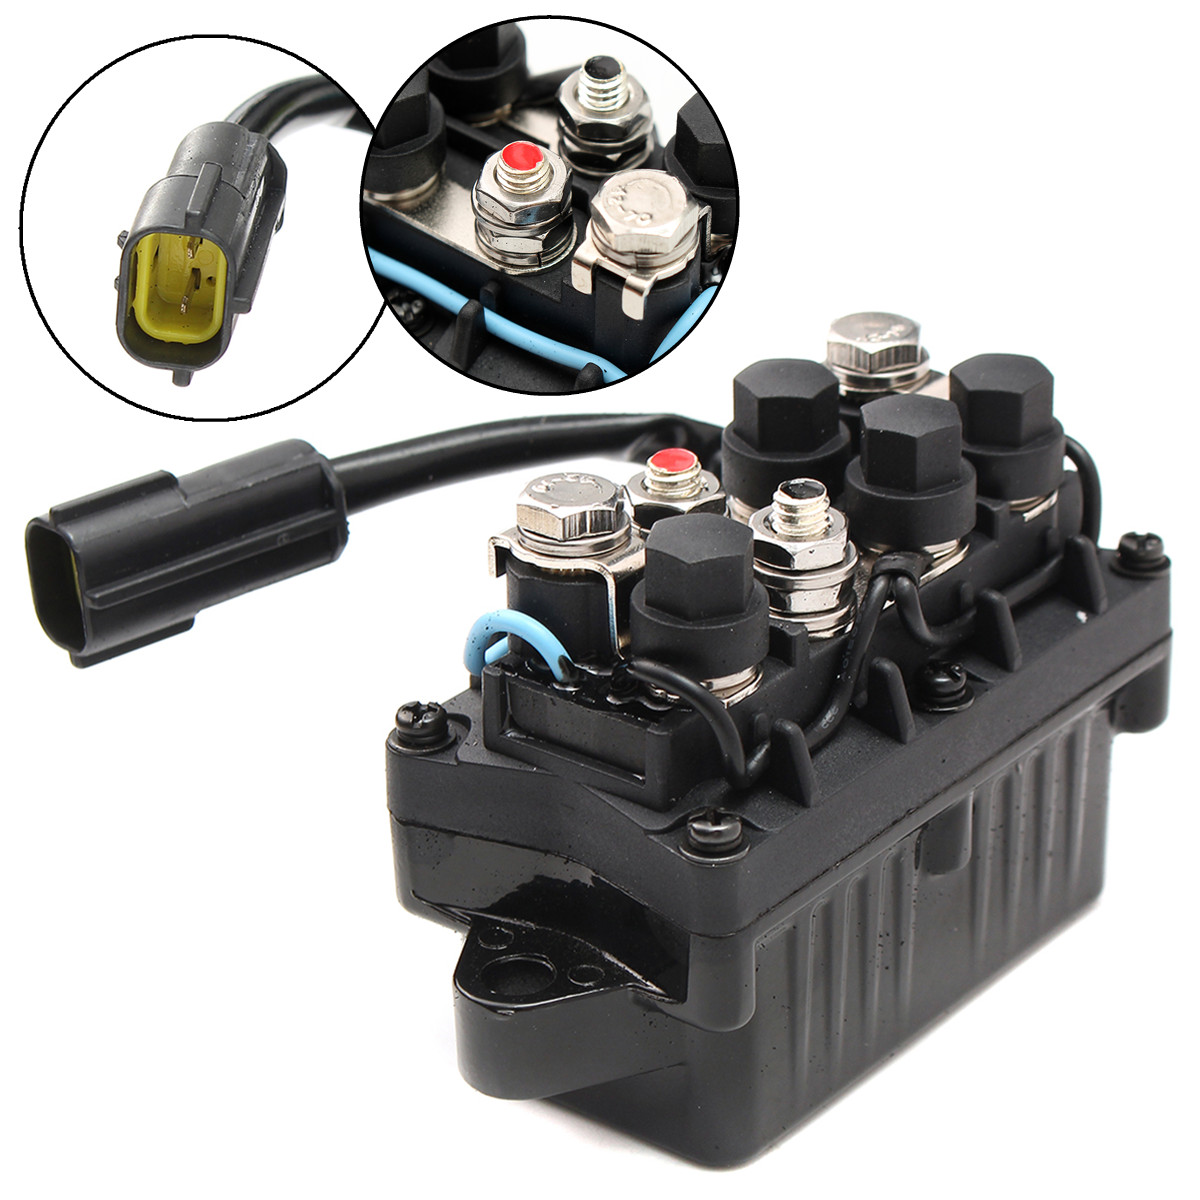 Boat Motor Power Trim Relay 2 Pin For Yamaha Outboard 4 Stroke Engine 40 90HP Aluminum